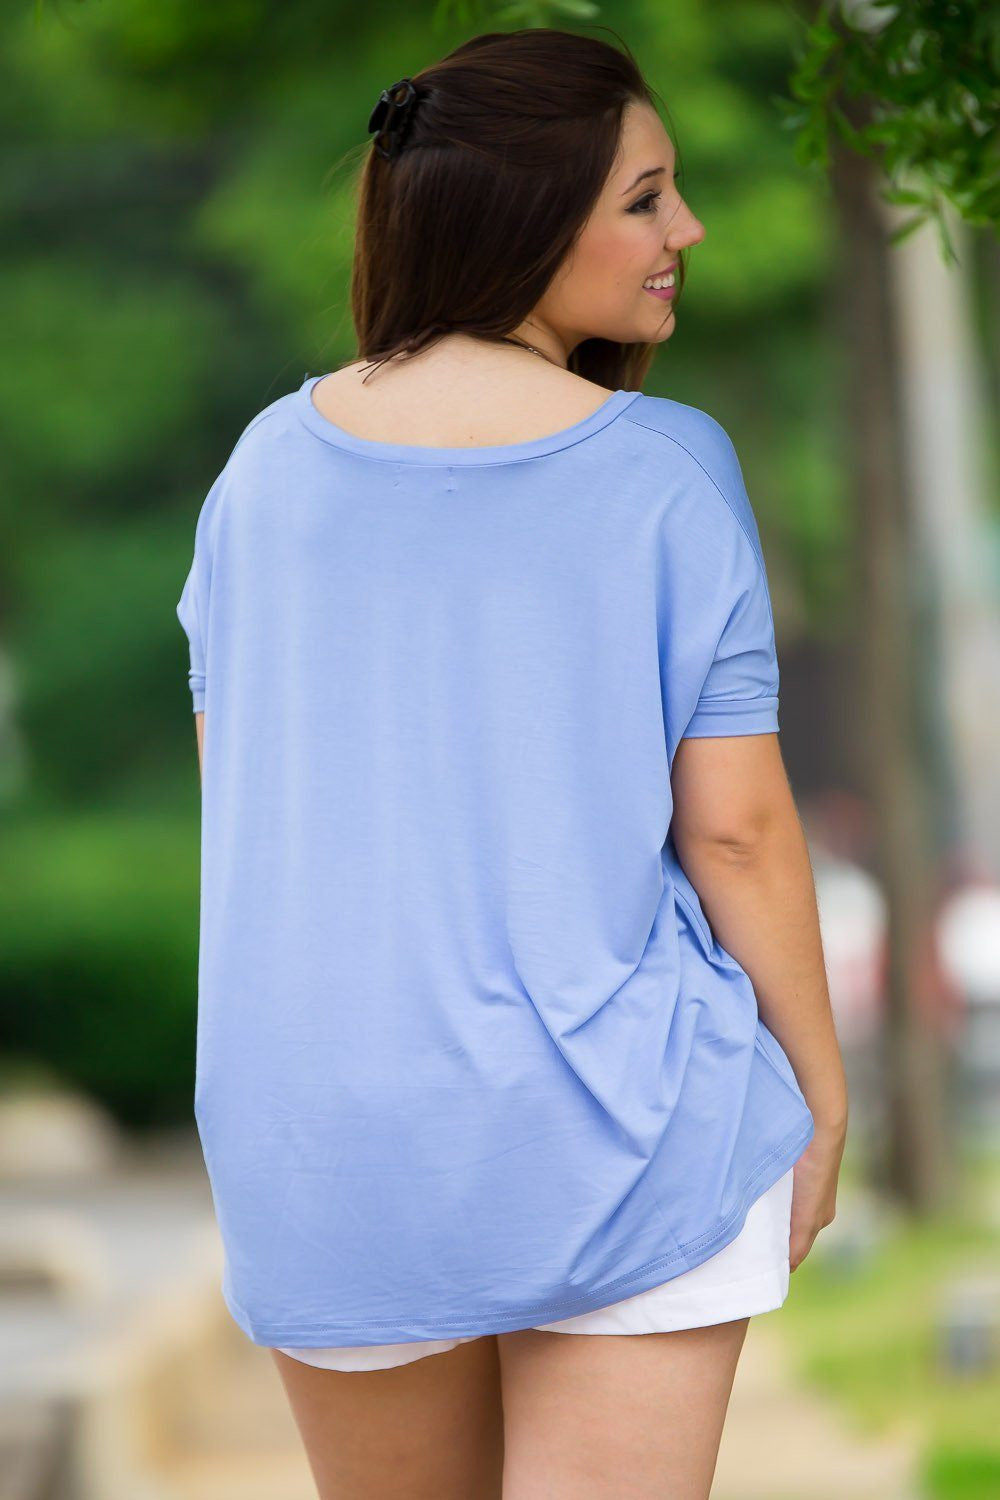 Short Sleeve V-Neck Piko Top - Serenity - Piko Clothing - 2